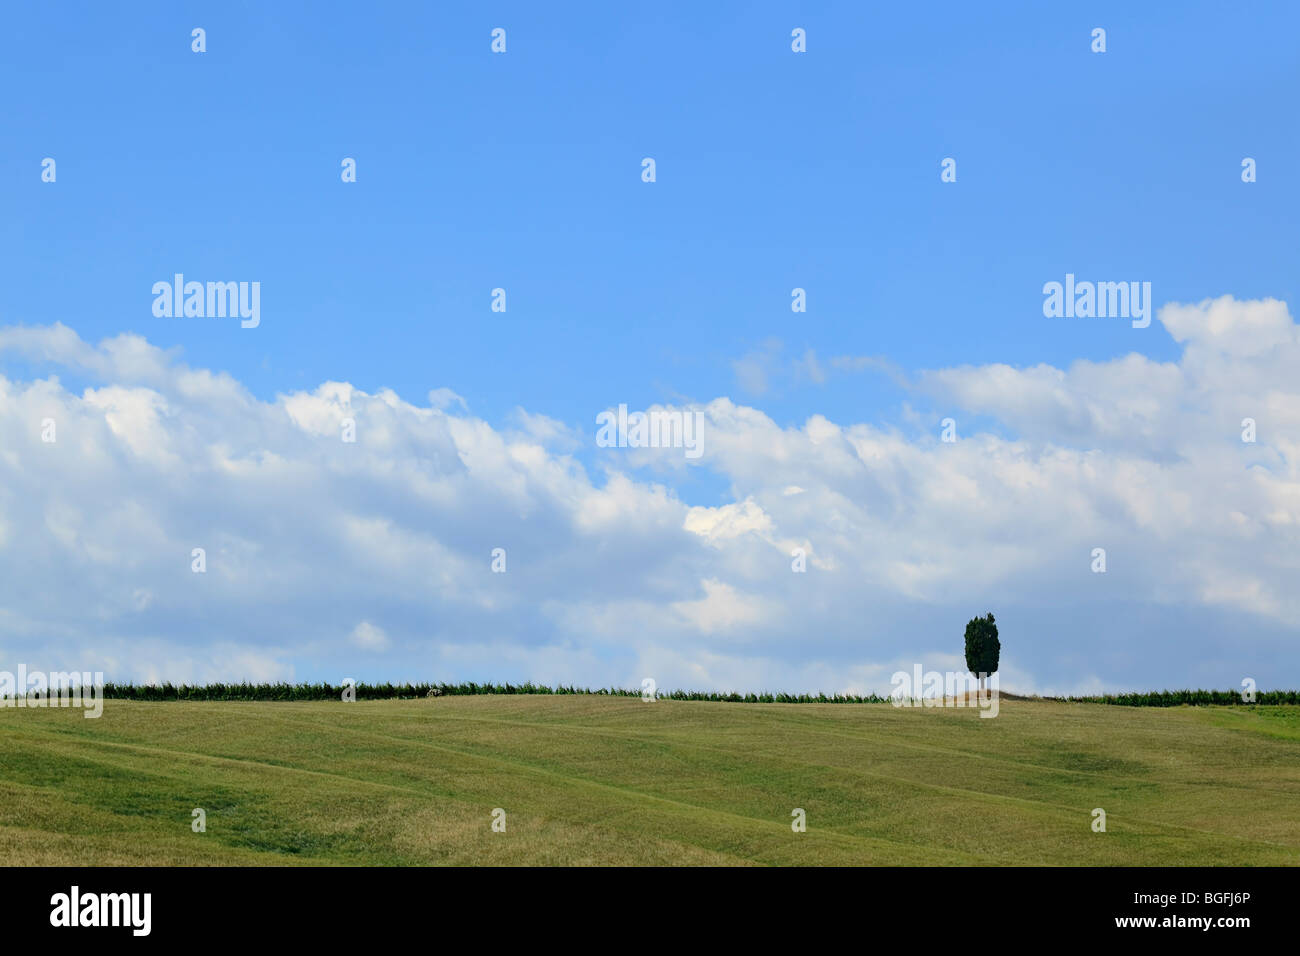 Lone tree in a field - Stock Image